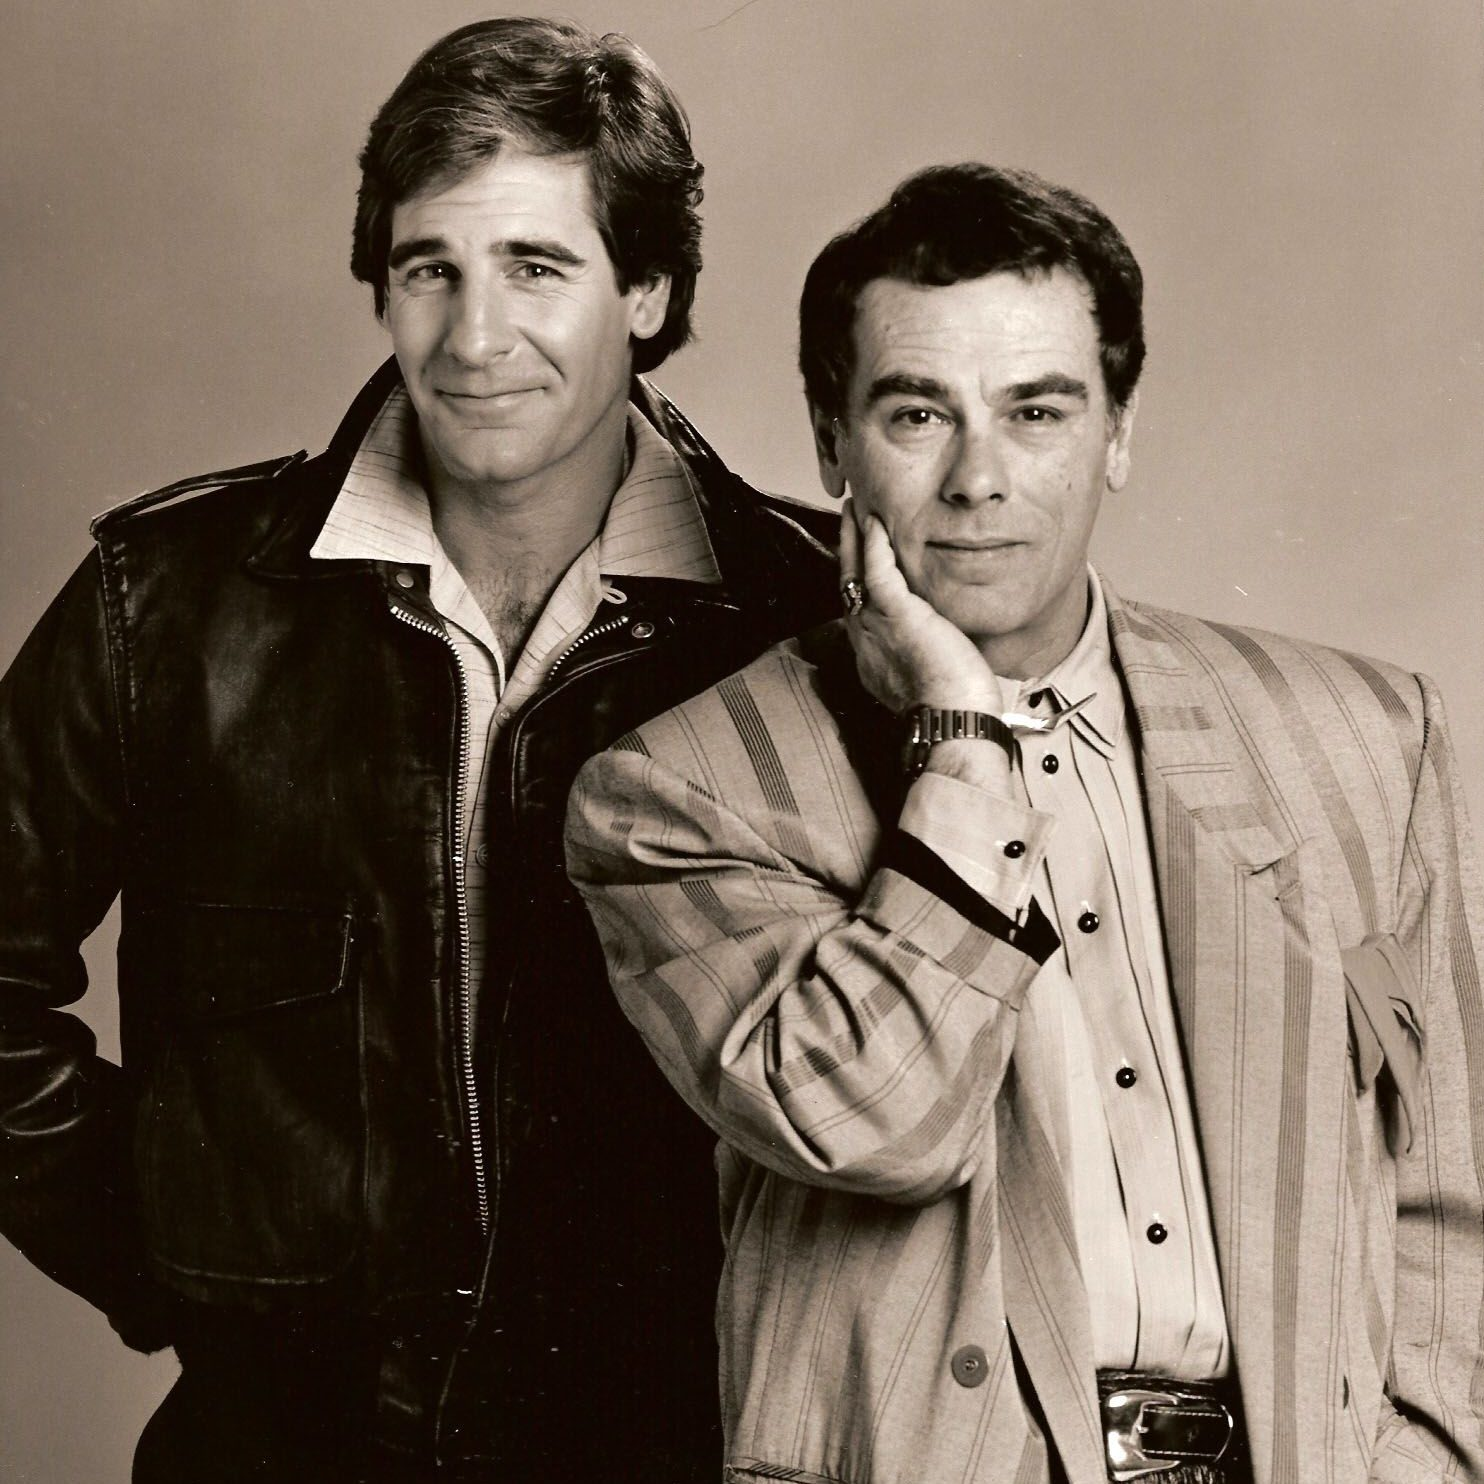 e3f0e18c520ad66830cdaba76f5a896f e1603808152196 20 Facts About Quantum Leap That'll Really Take You Back